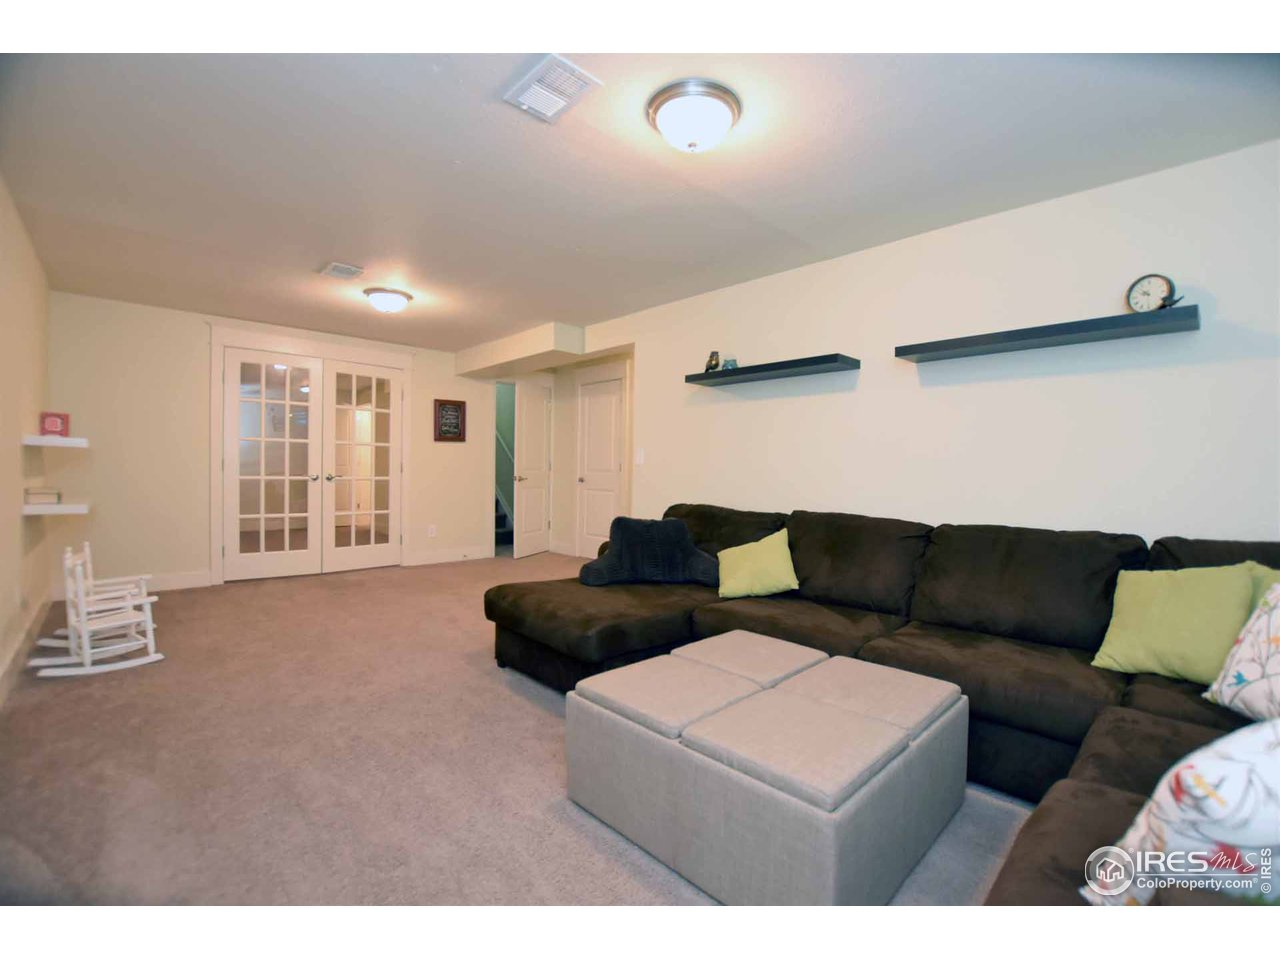 Finished basement has a great family room